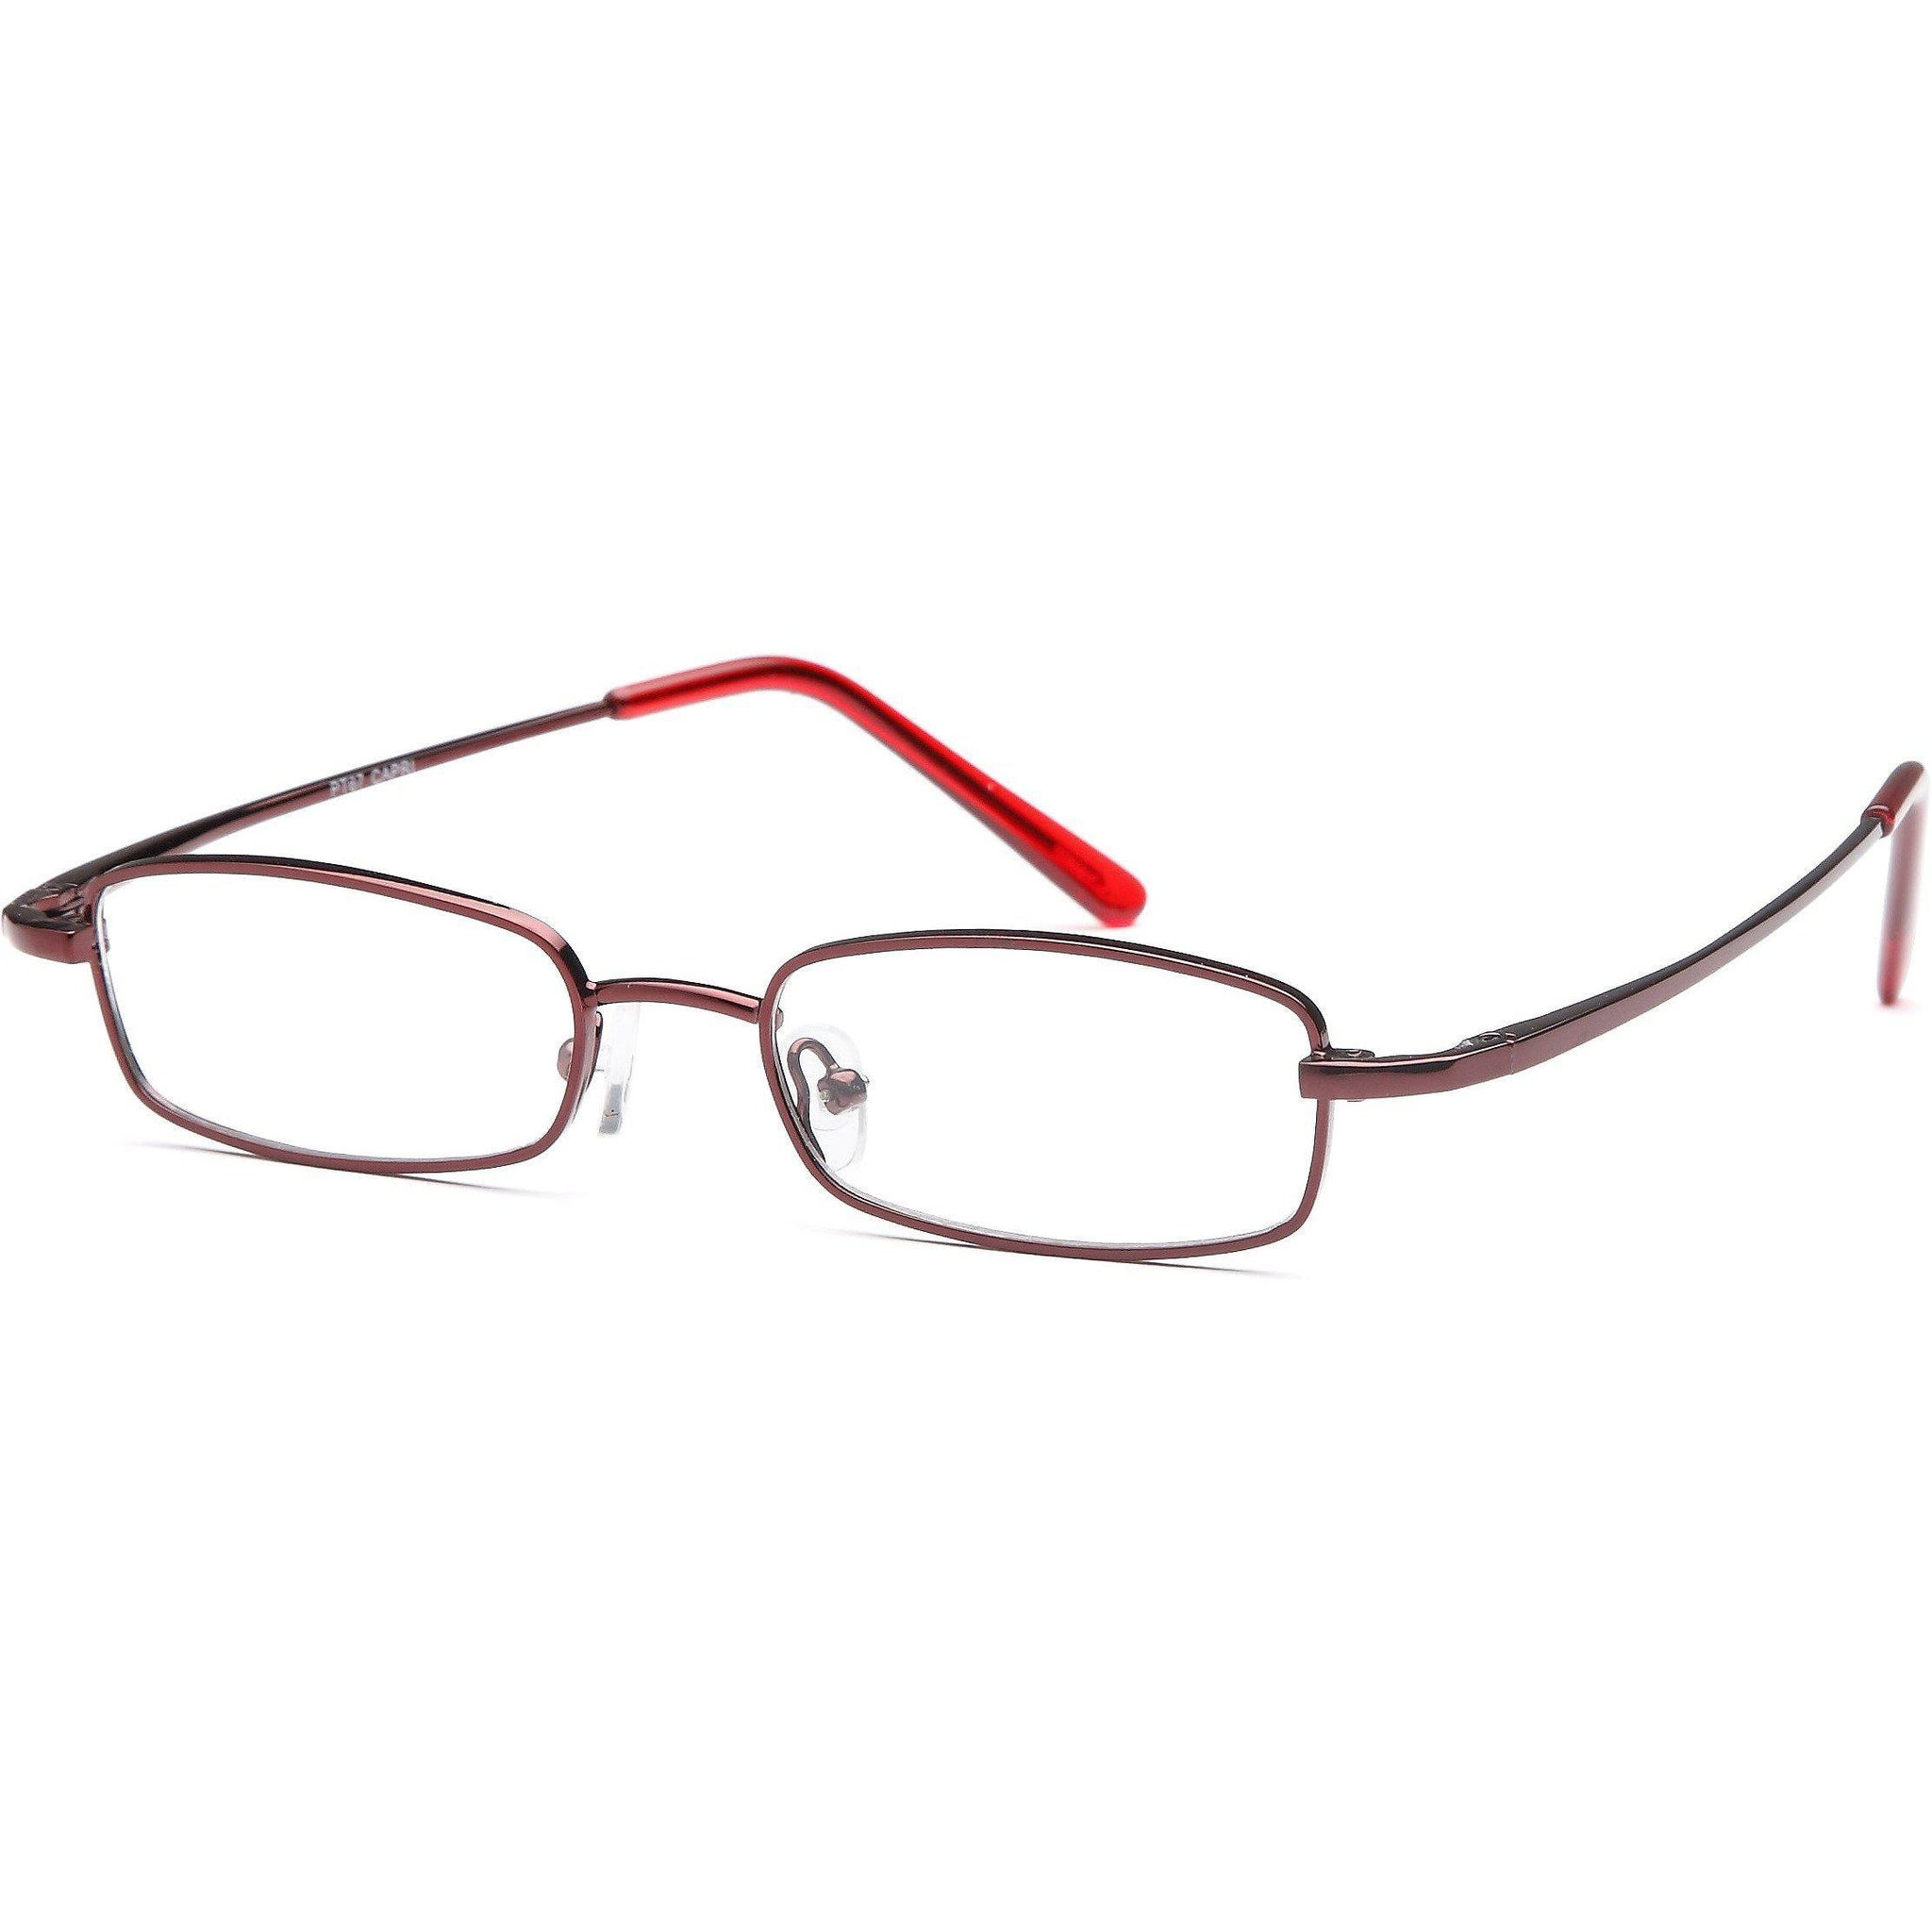 Appletree Prescription Glasses PT 67 Eyeglasses Frame